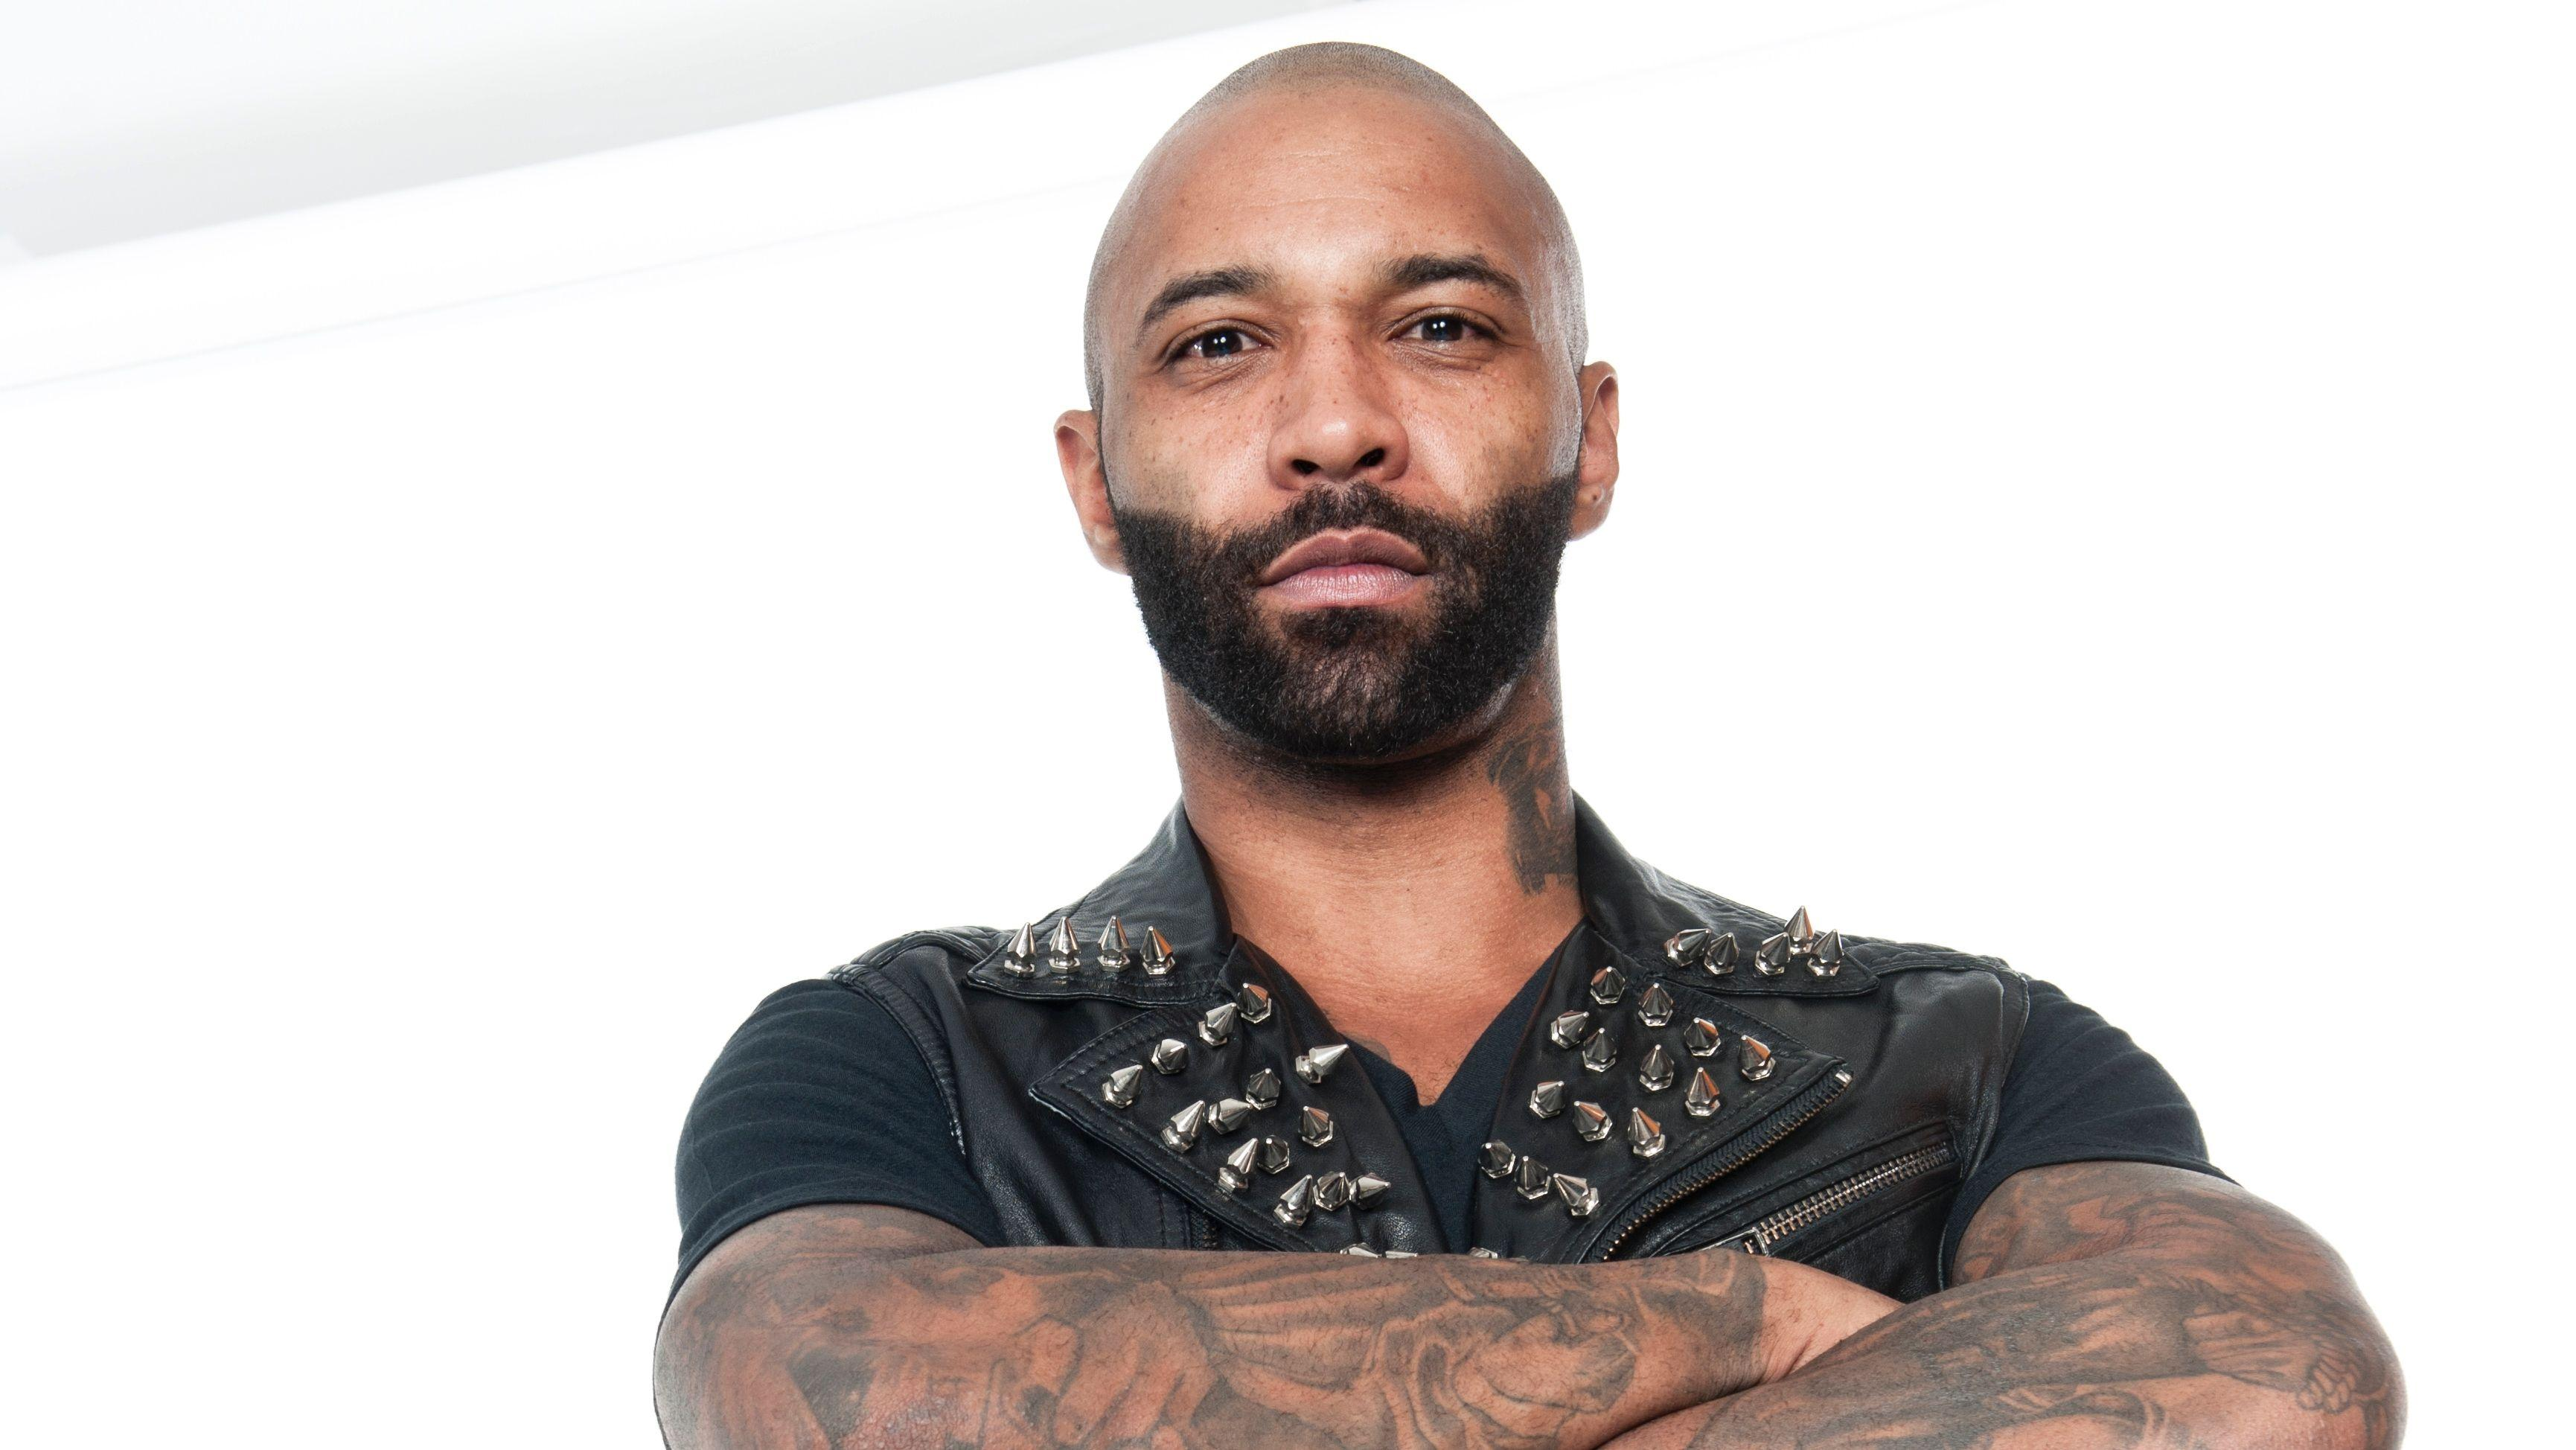 Joseph Anthony Budden II born August 31 1980 is an American broadcaster and former rapper and songwriter Buddens eponymous debut studio album was released in